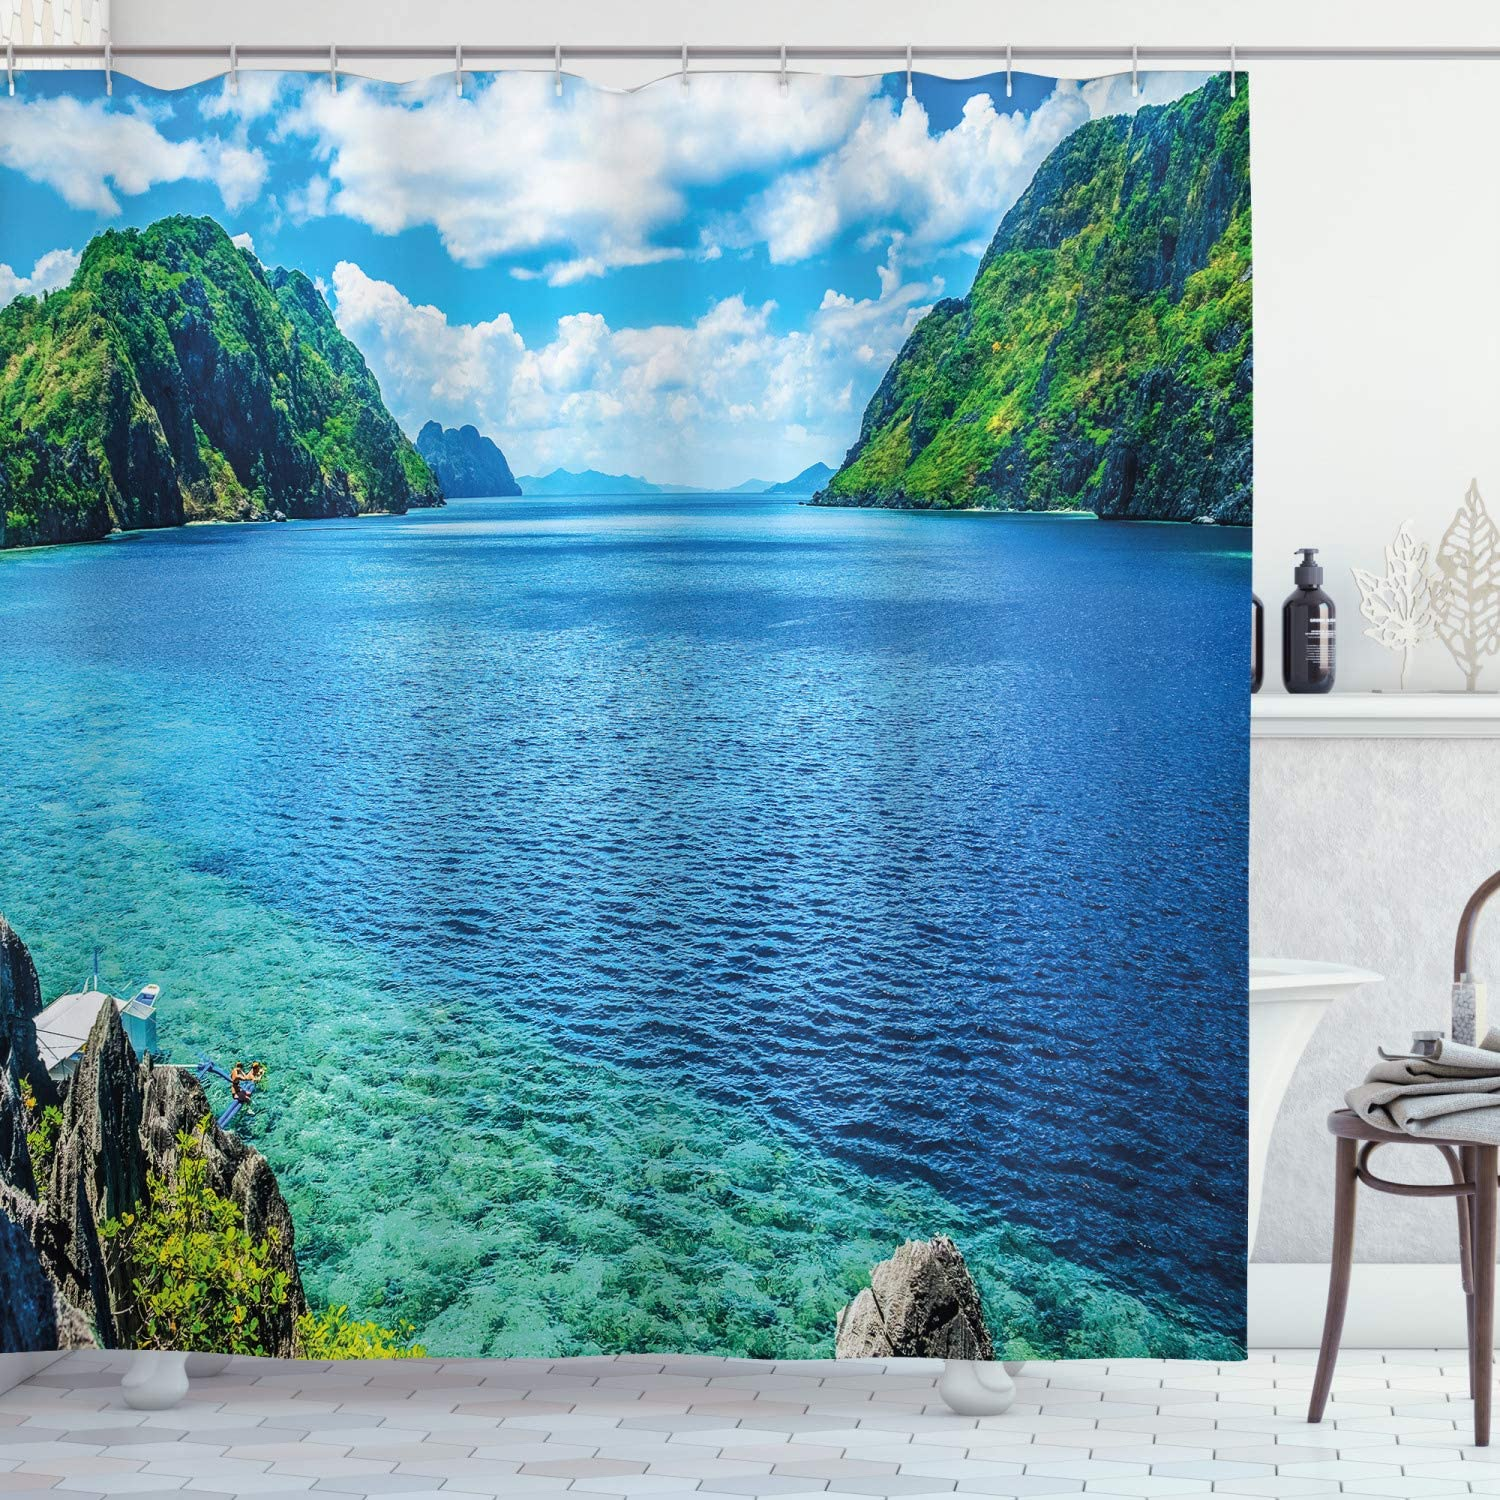 """Ambesonne Nature Shower Curtain, Scenic View Sea Bay and Mountain Islands in Palawan Philippines Idyllic Image, Cloth Fabric Bathroom Decor Set with Hooks, 70"""" Long, White Green"""